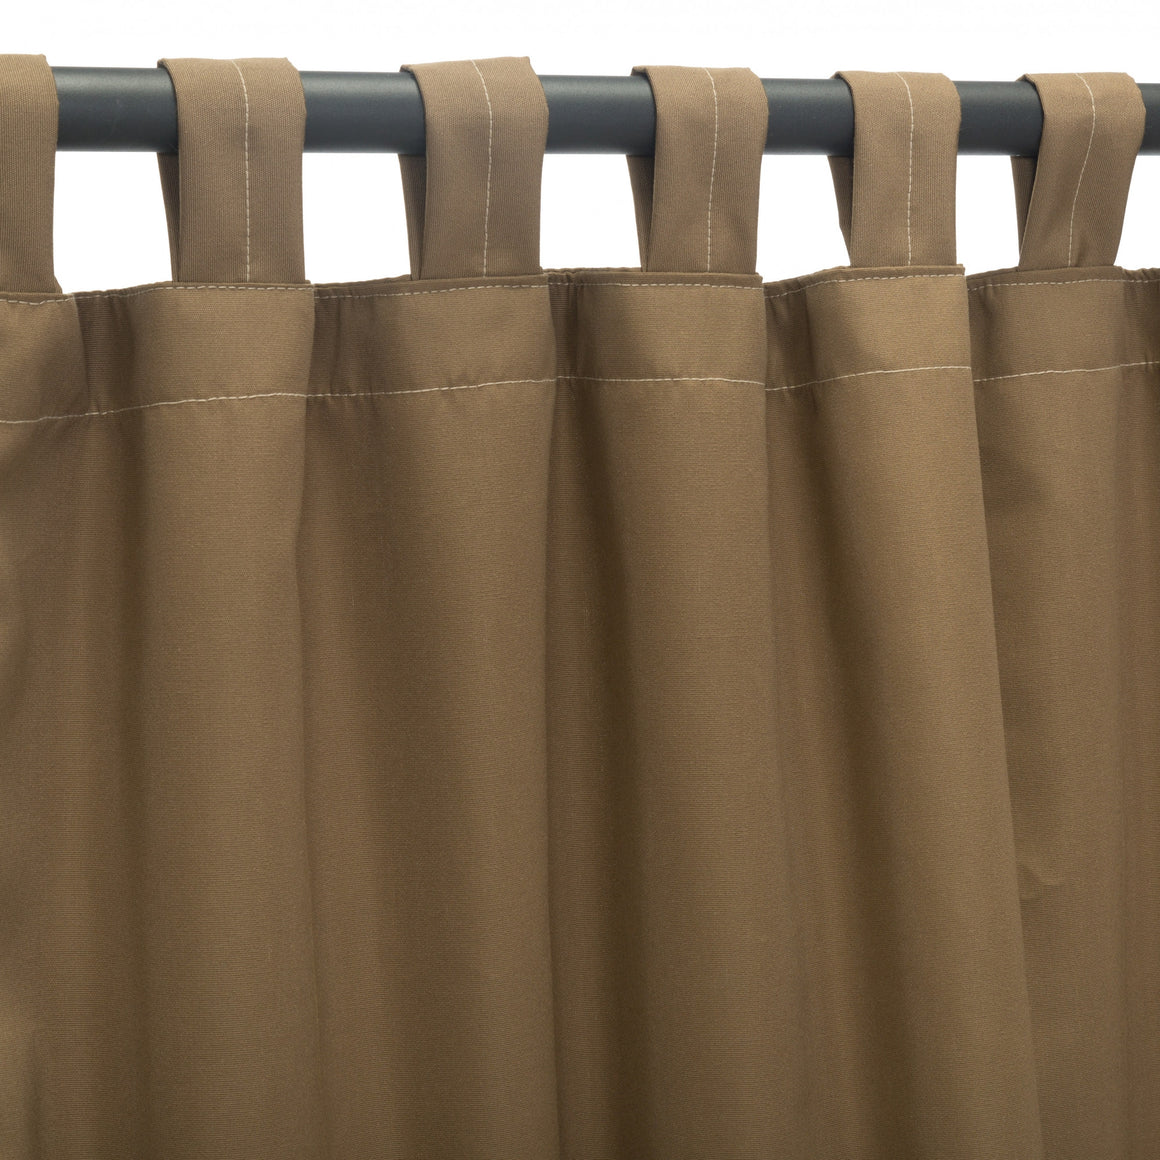 Sunbrella Outdoor Curtain With Tabs - Canvas Cocoa